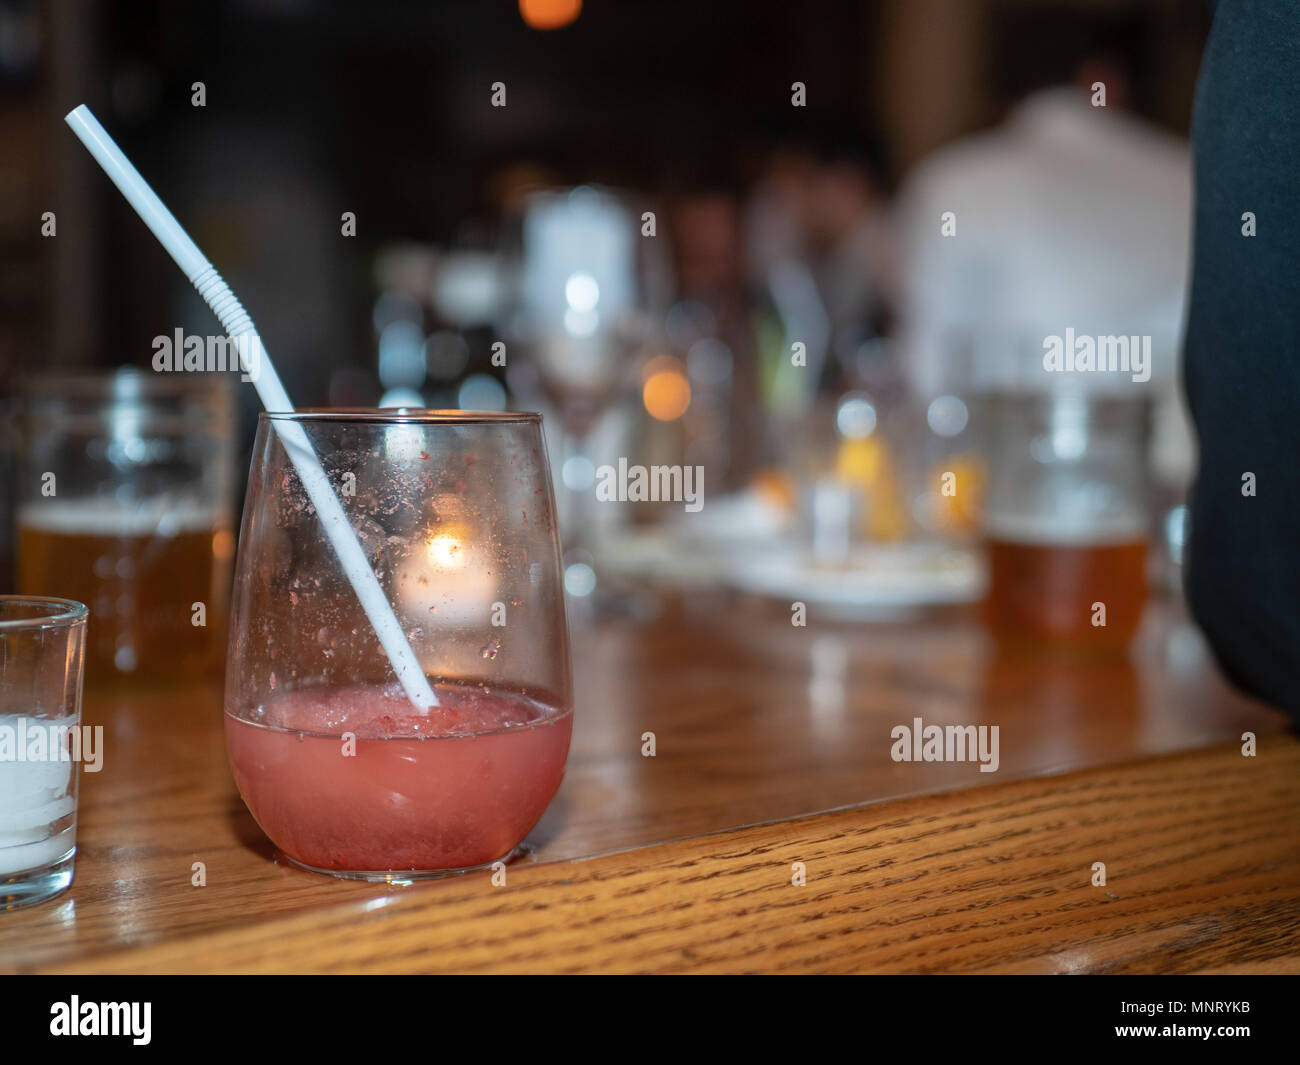 Fruity alcohol drink sitting on a busy bar with commotion all around - Stock Image